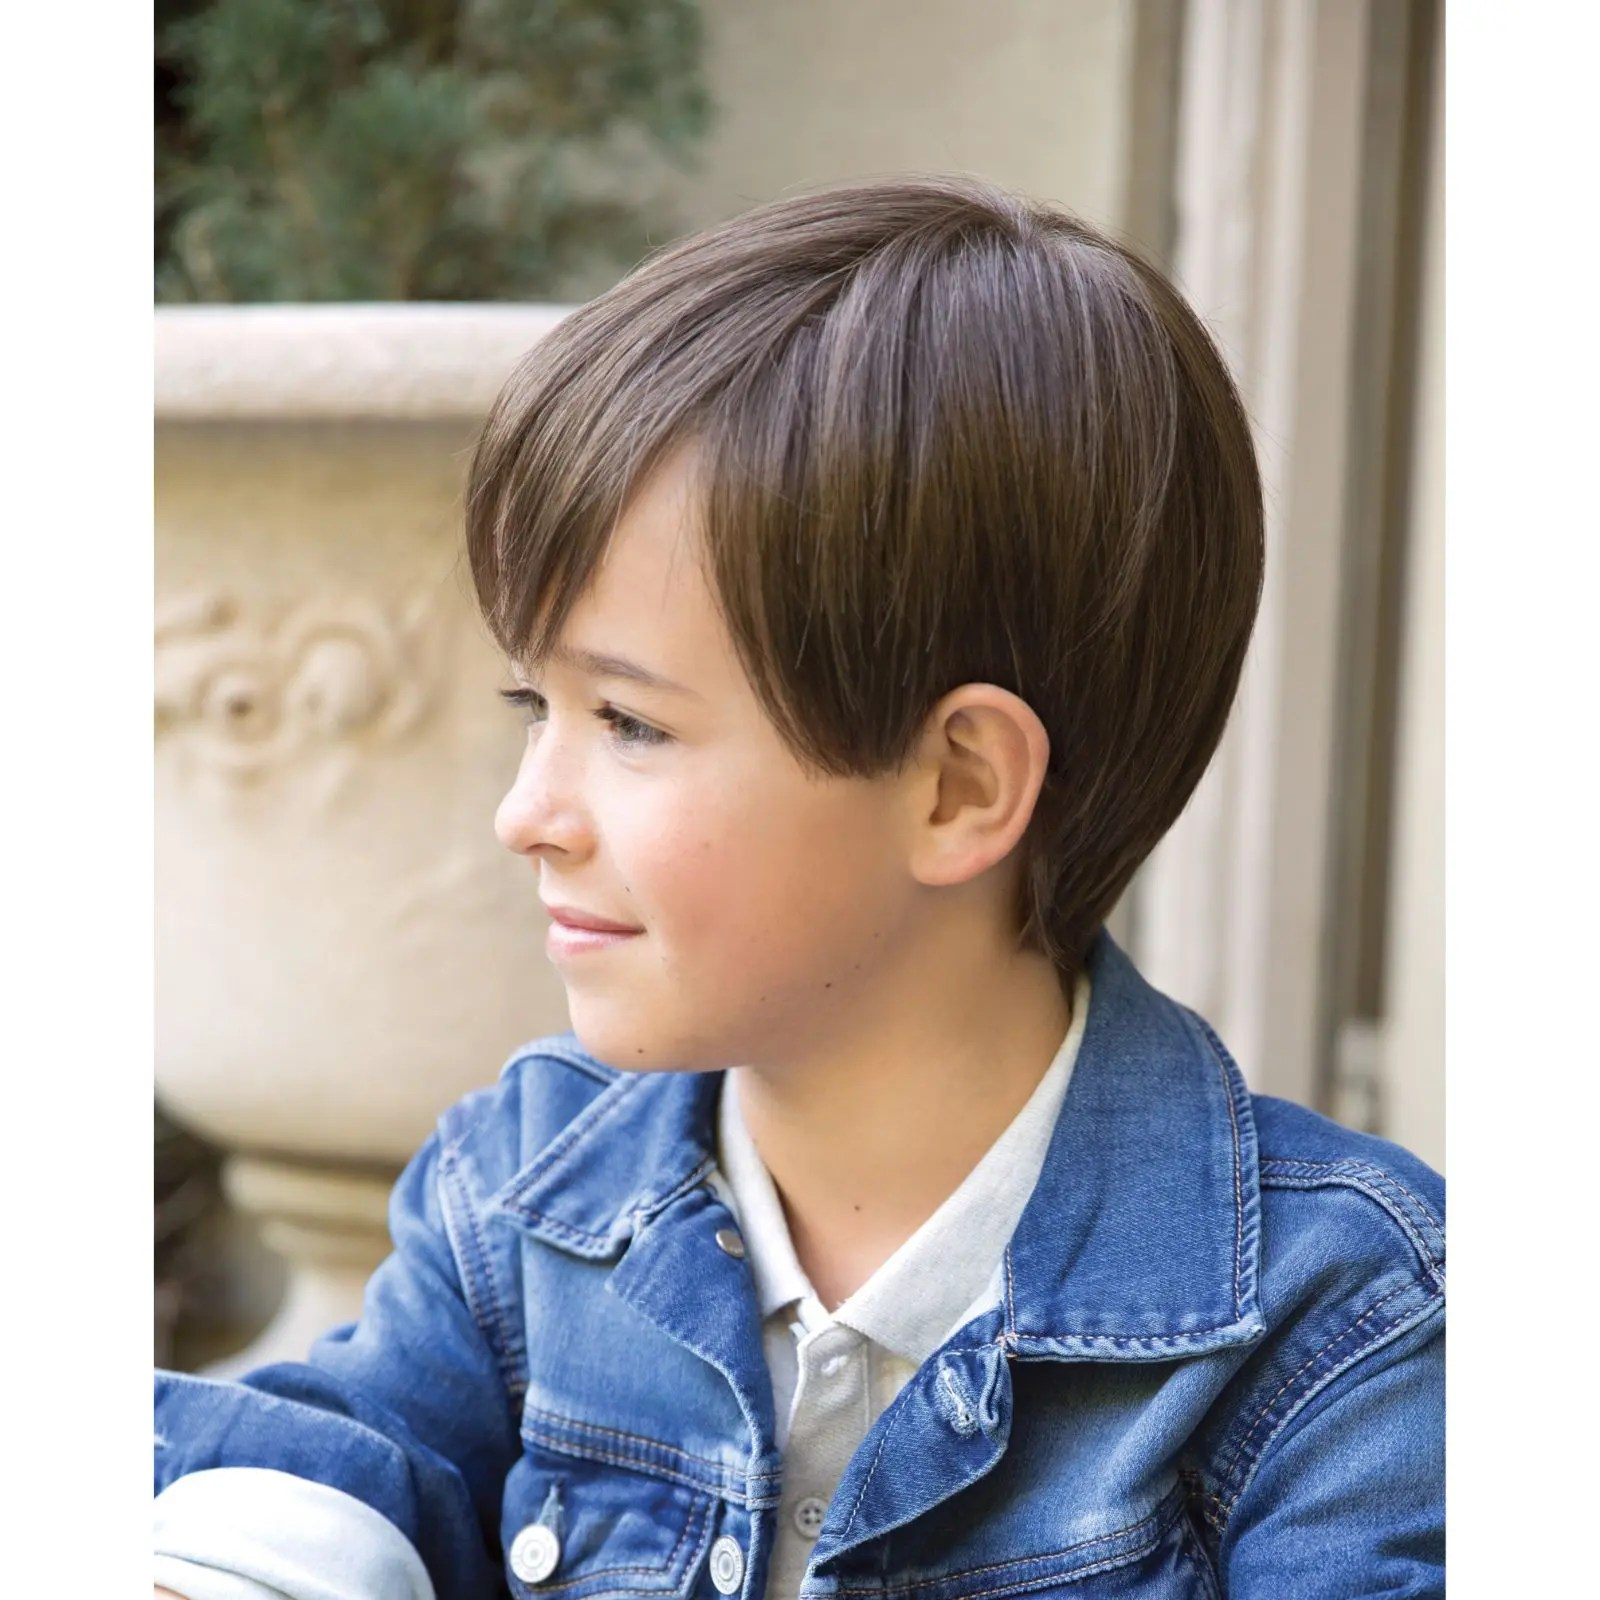 Logan Wig for Kids by Amore in Medium Brown